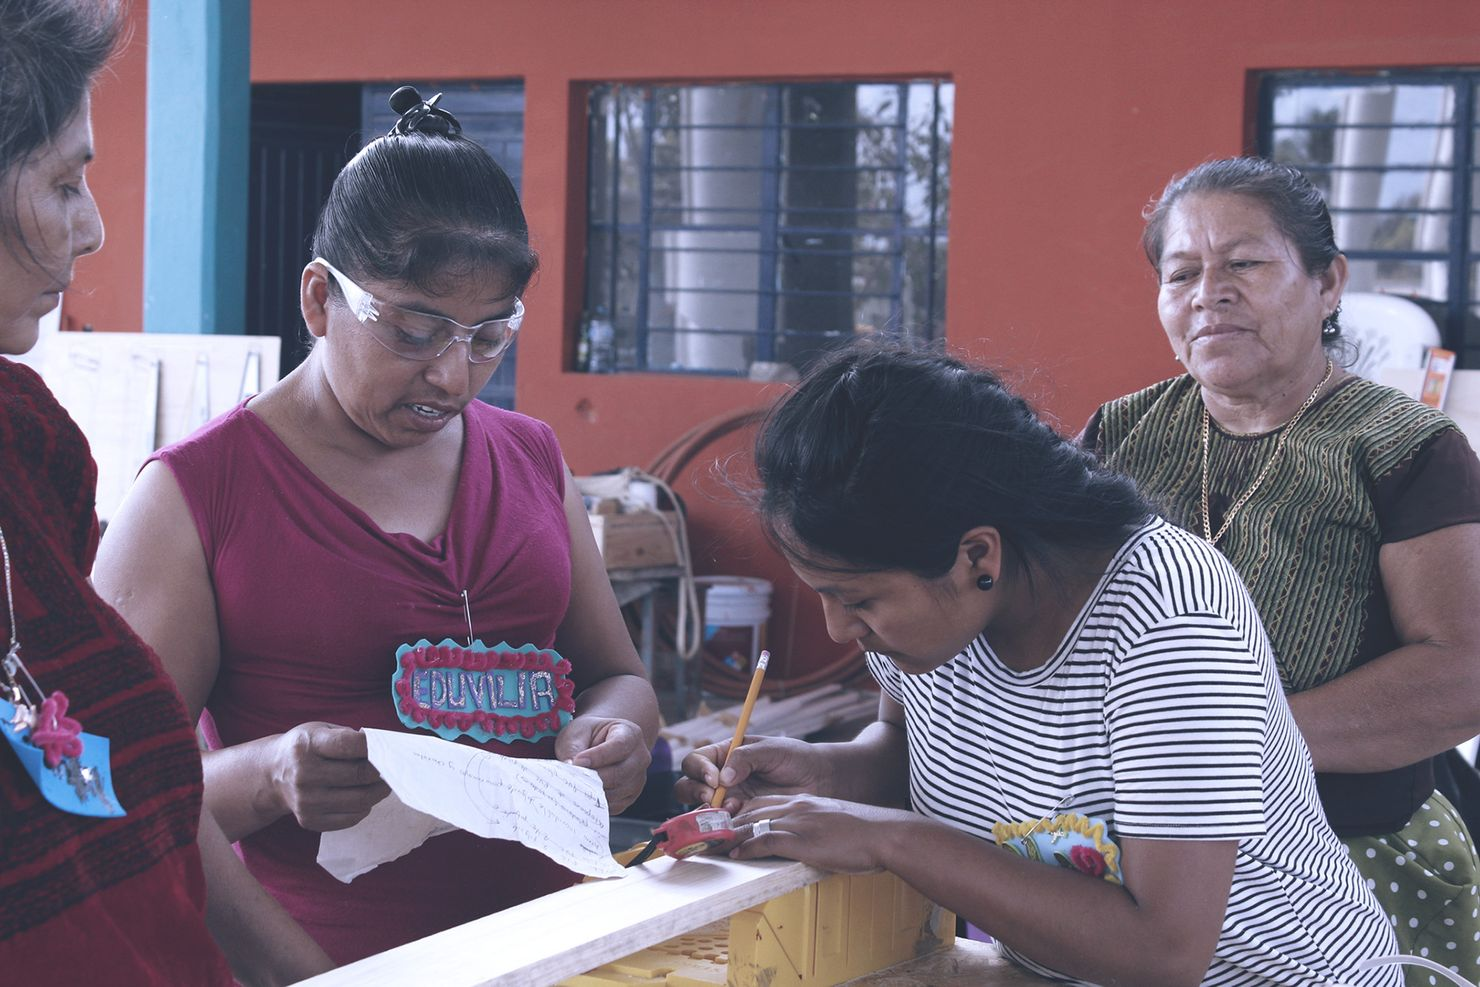 two oaxacan women collaborate to build something (one is marking a measurement on a piece of wood) while a third woman watches